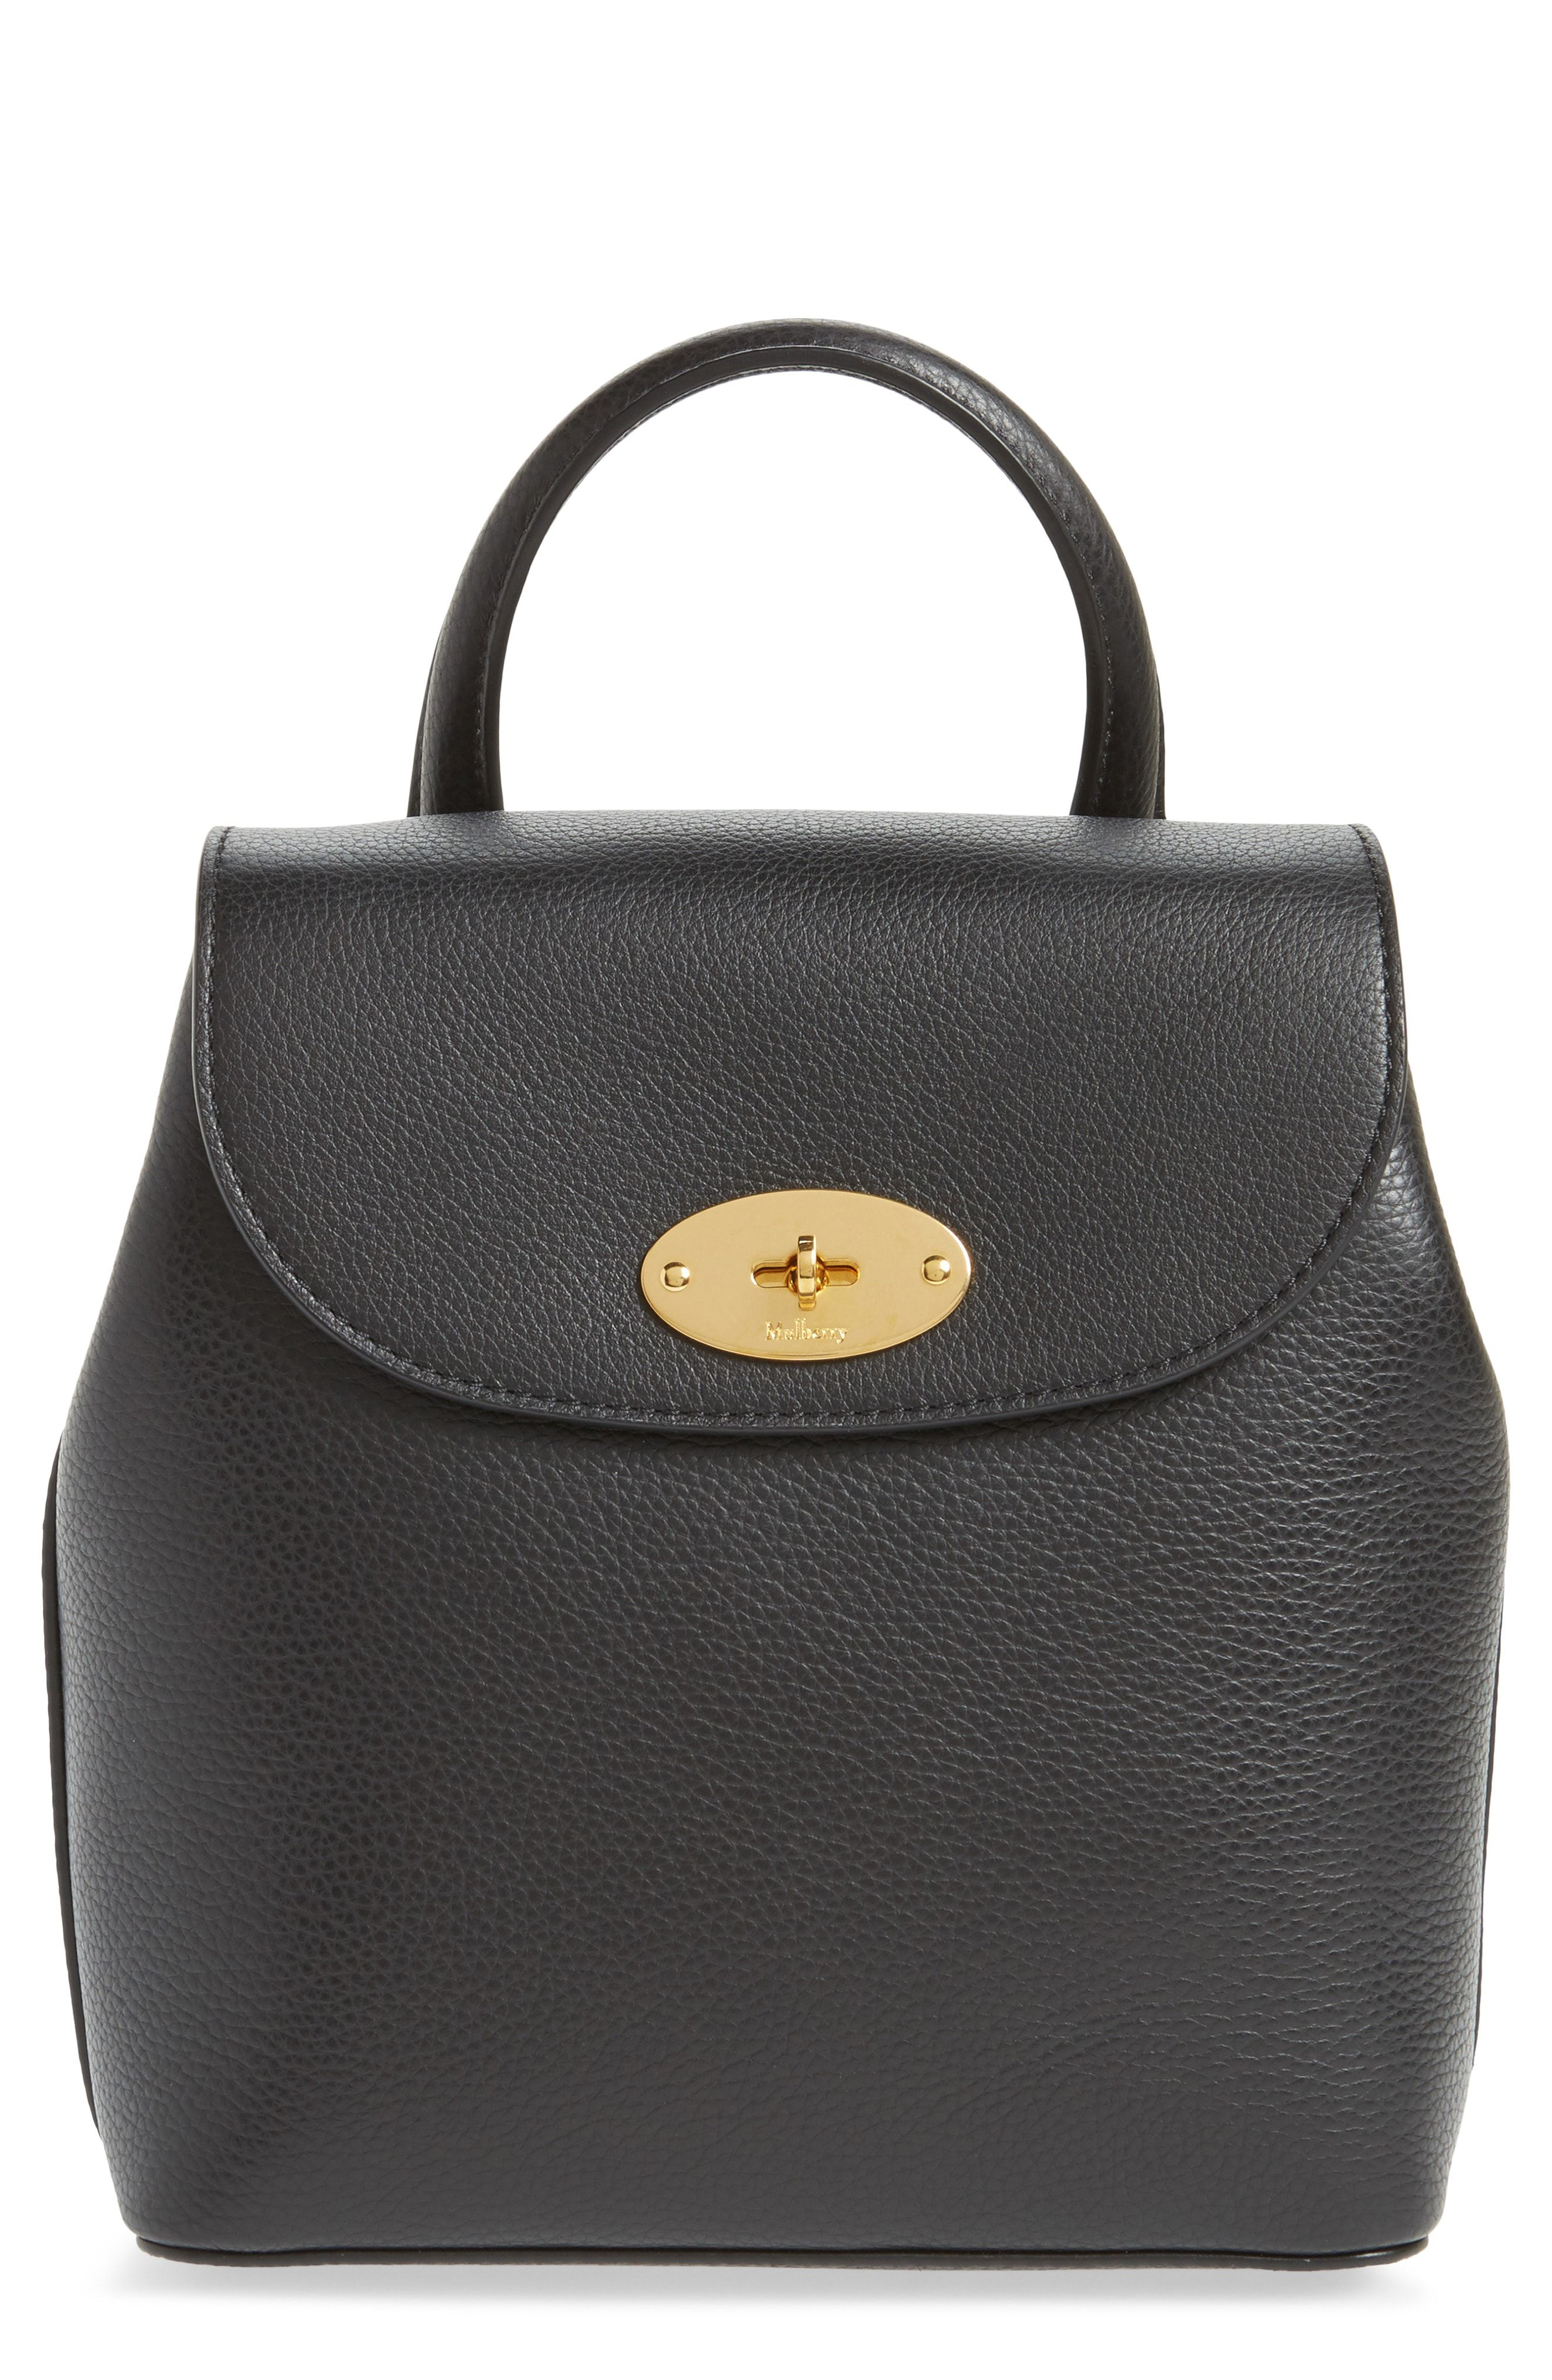 72a2b1f7e5 ... france mulberry mini bayswater calfskin leather convertible backpack  available at nordstrom ec30c a02e3